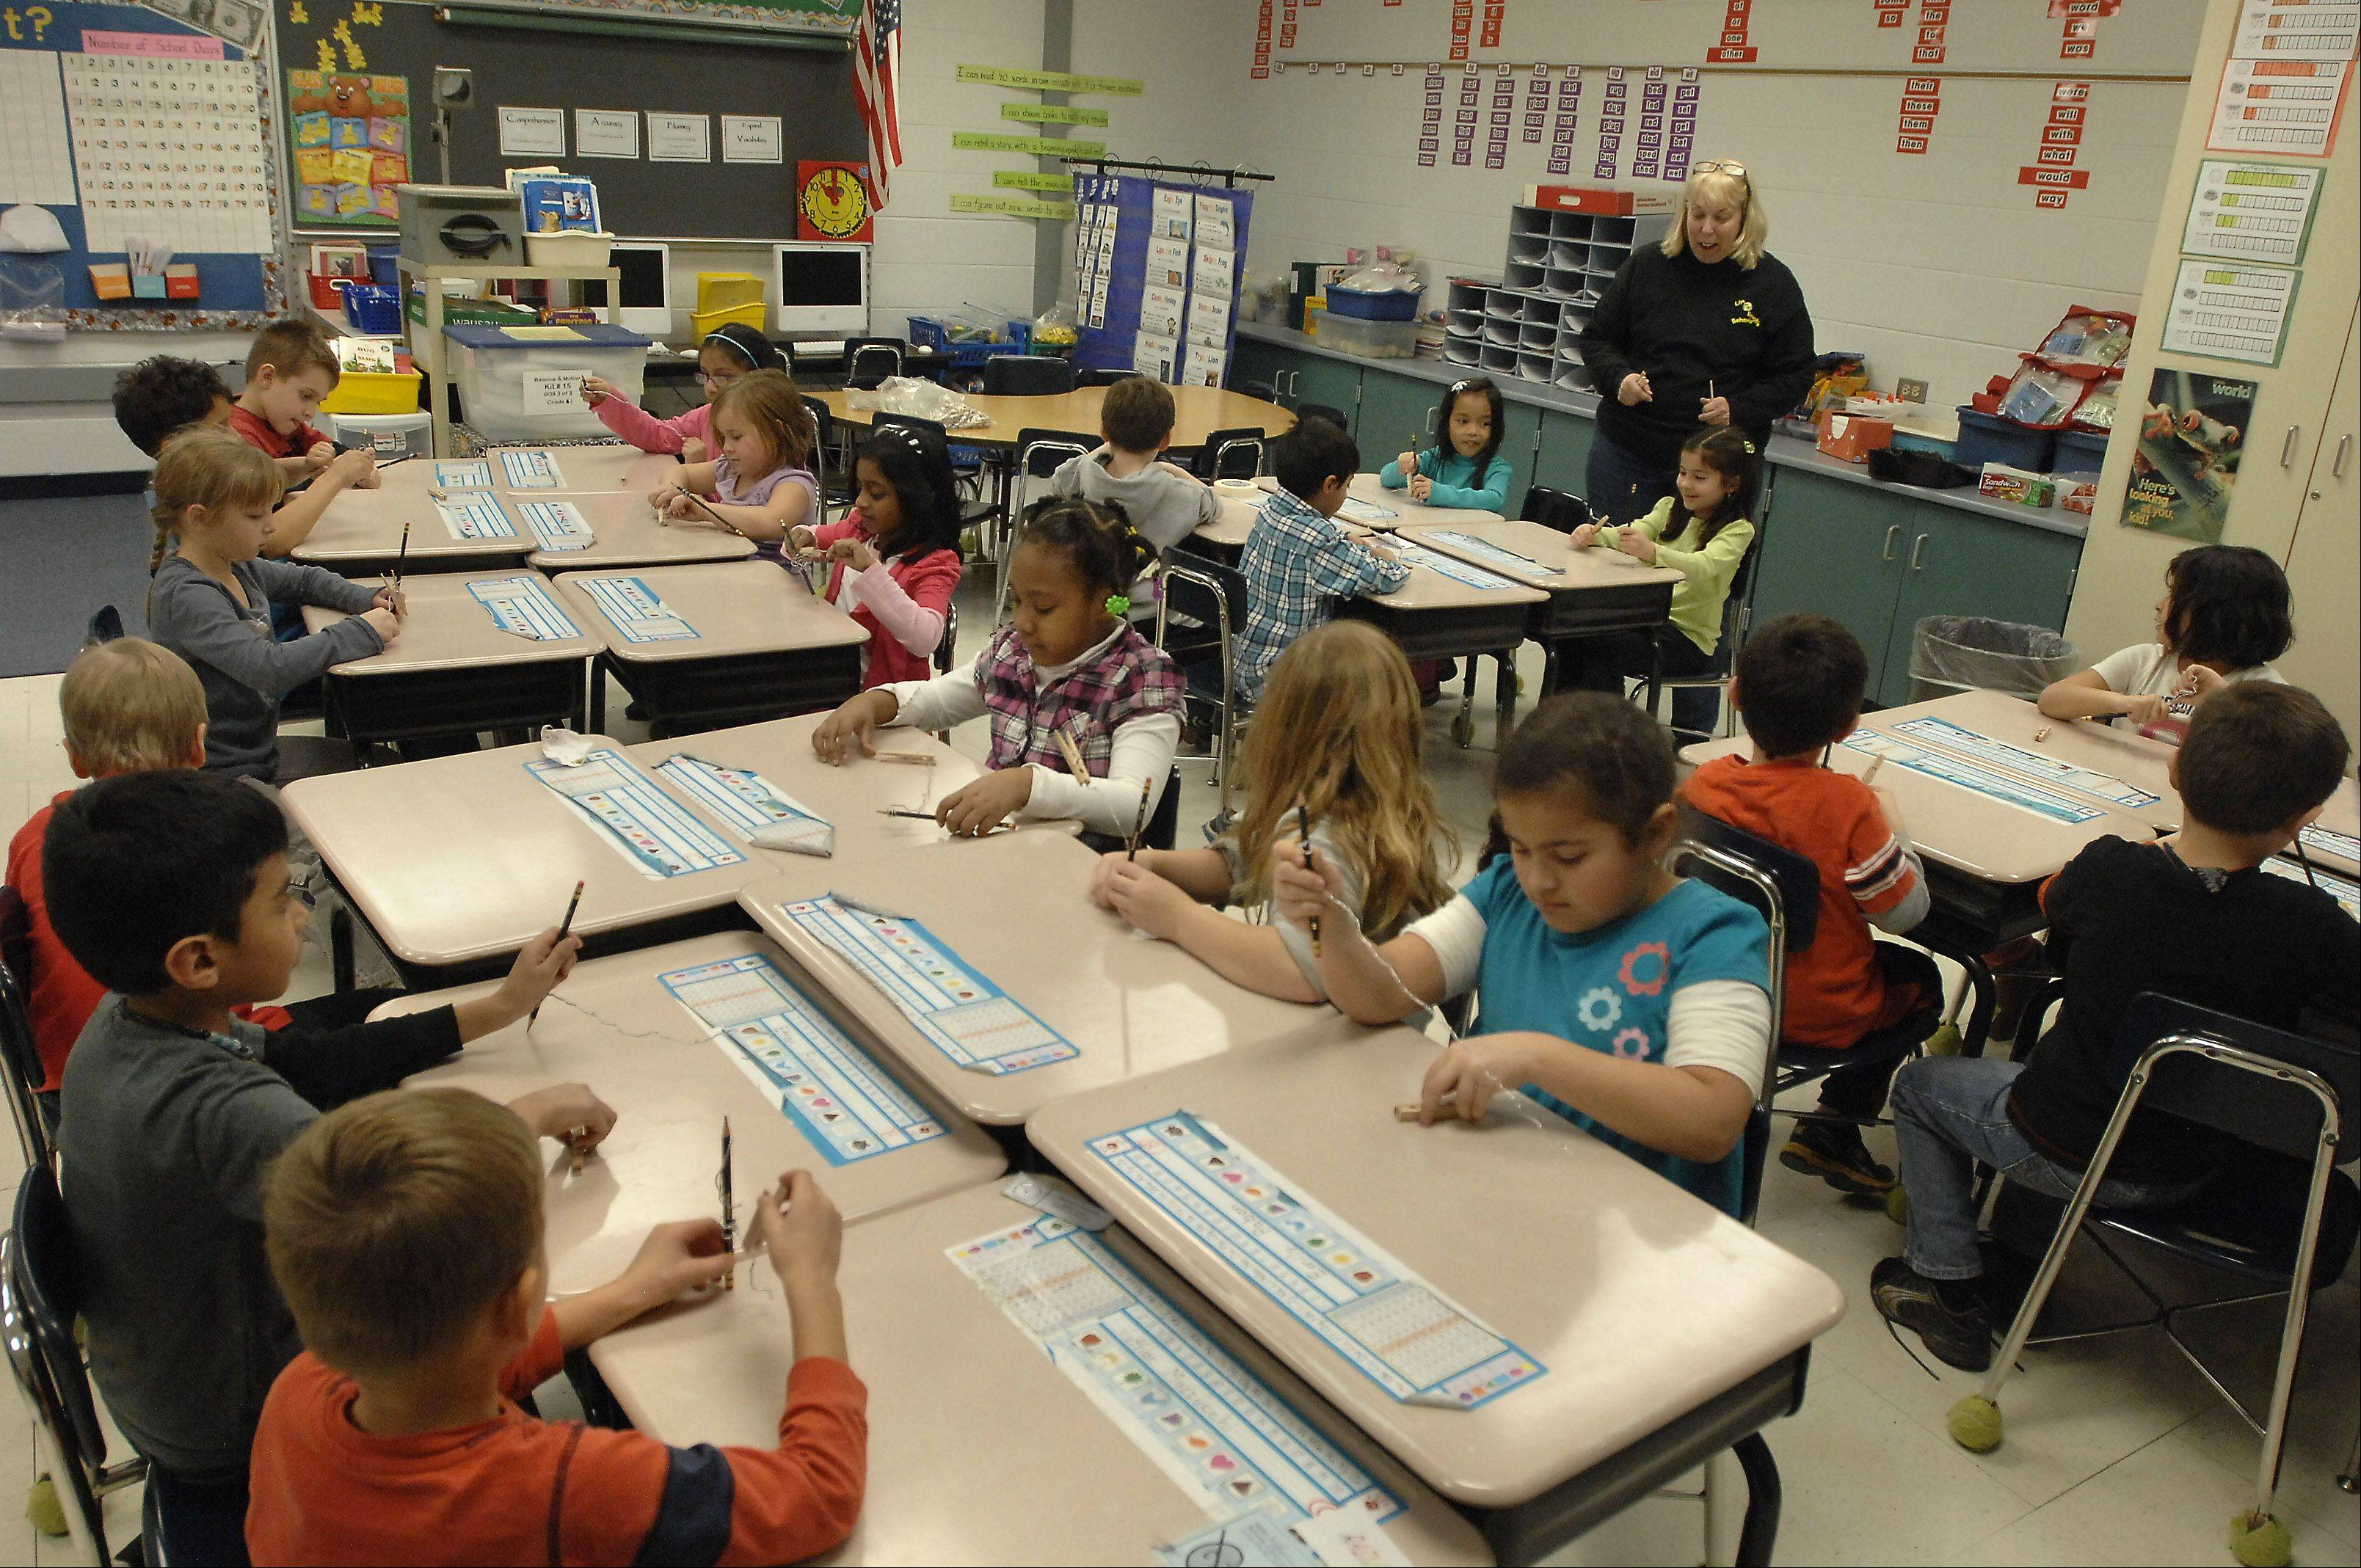 Pam Schakowsky teaches a science experiment to her first-grade class at Robert Frost Elementary School in Mount Prospect. Elk Grove Township Elementary District 59 will conduct three public forums this month to address overcrowding at the school.